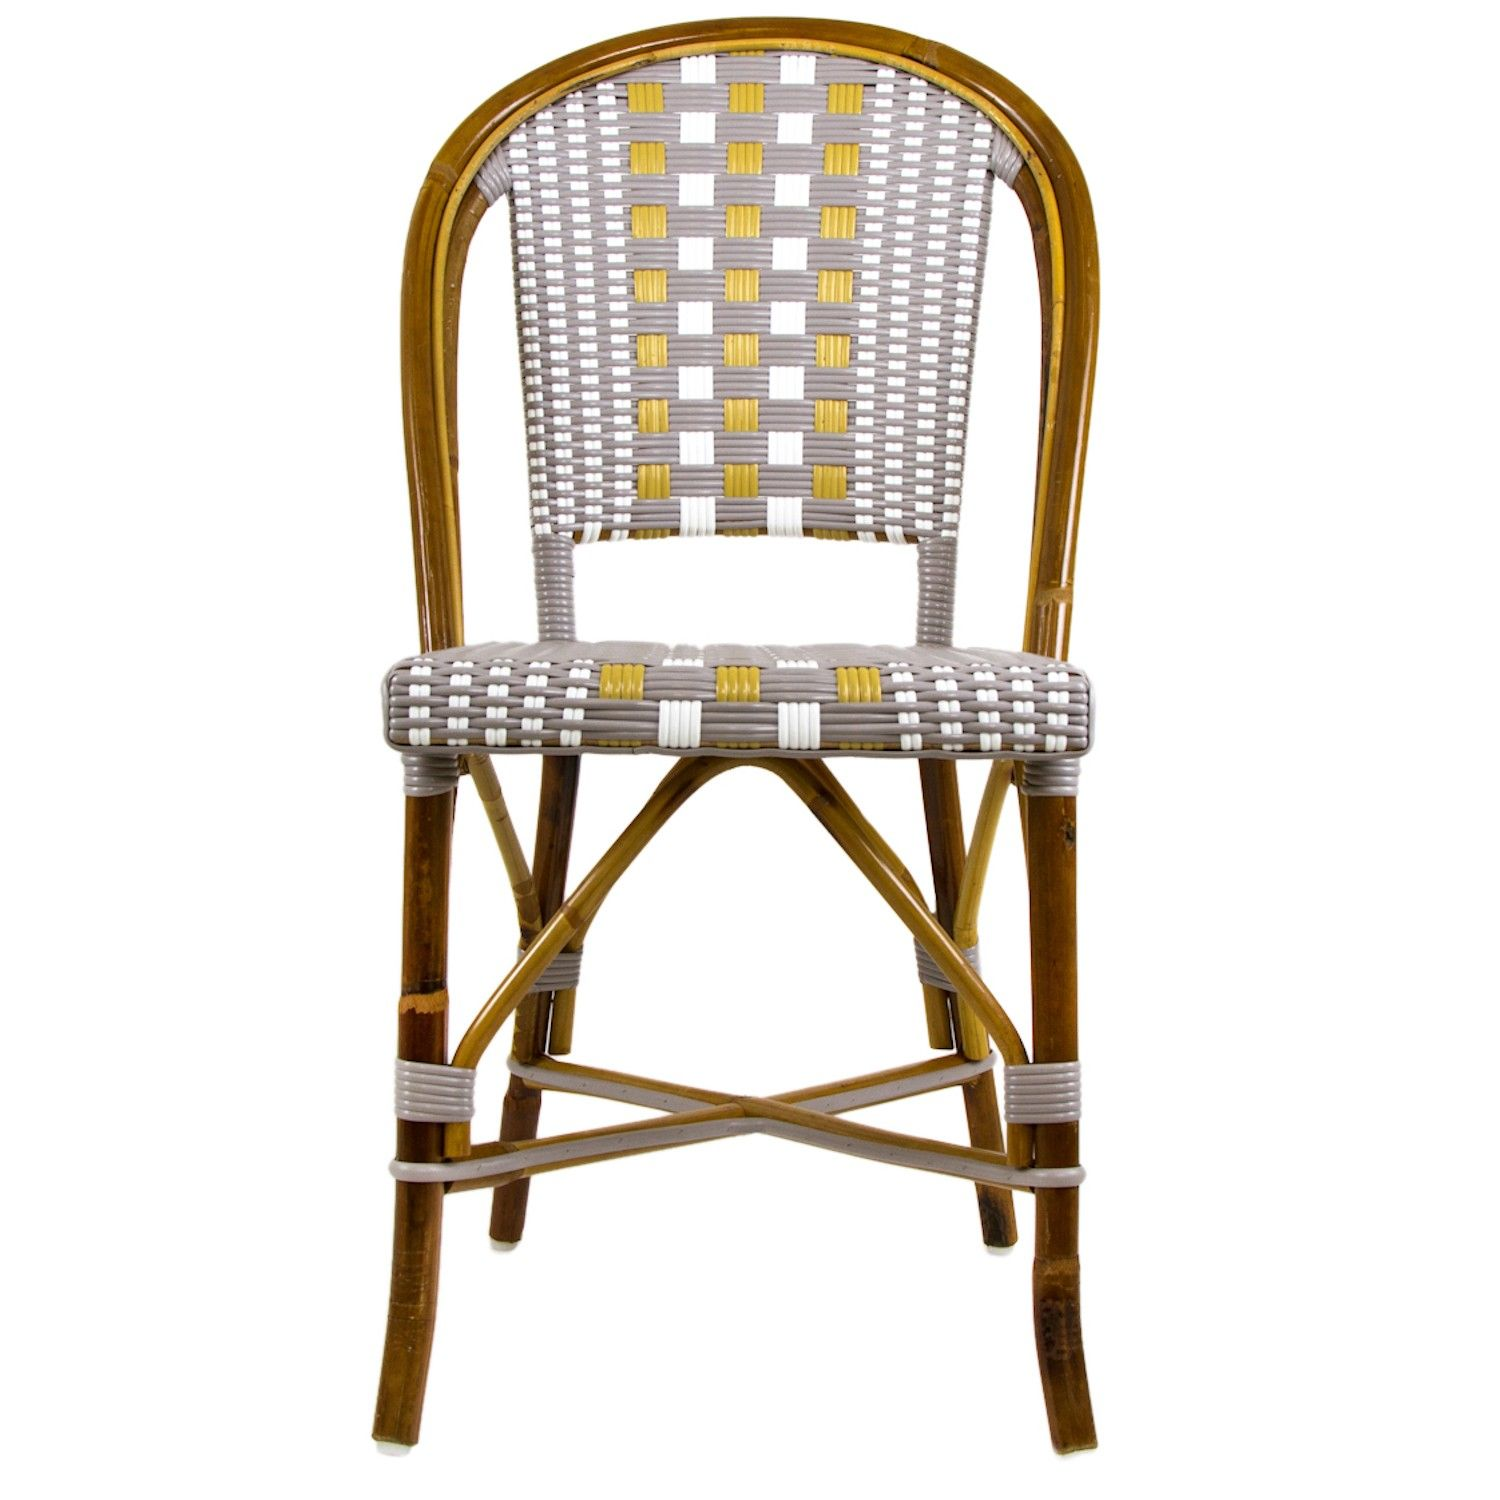 French Cafe Chairs White Barber Chair With Headrest Kira Vath Interiors